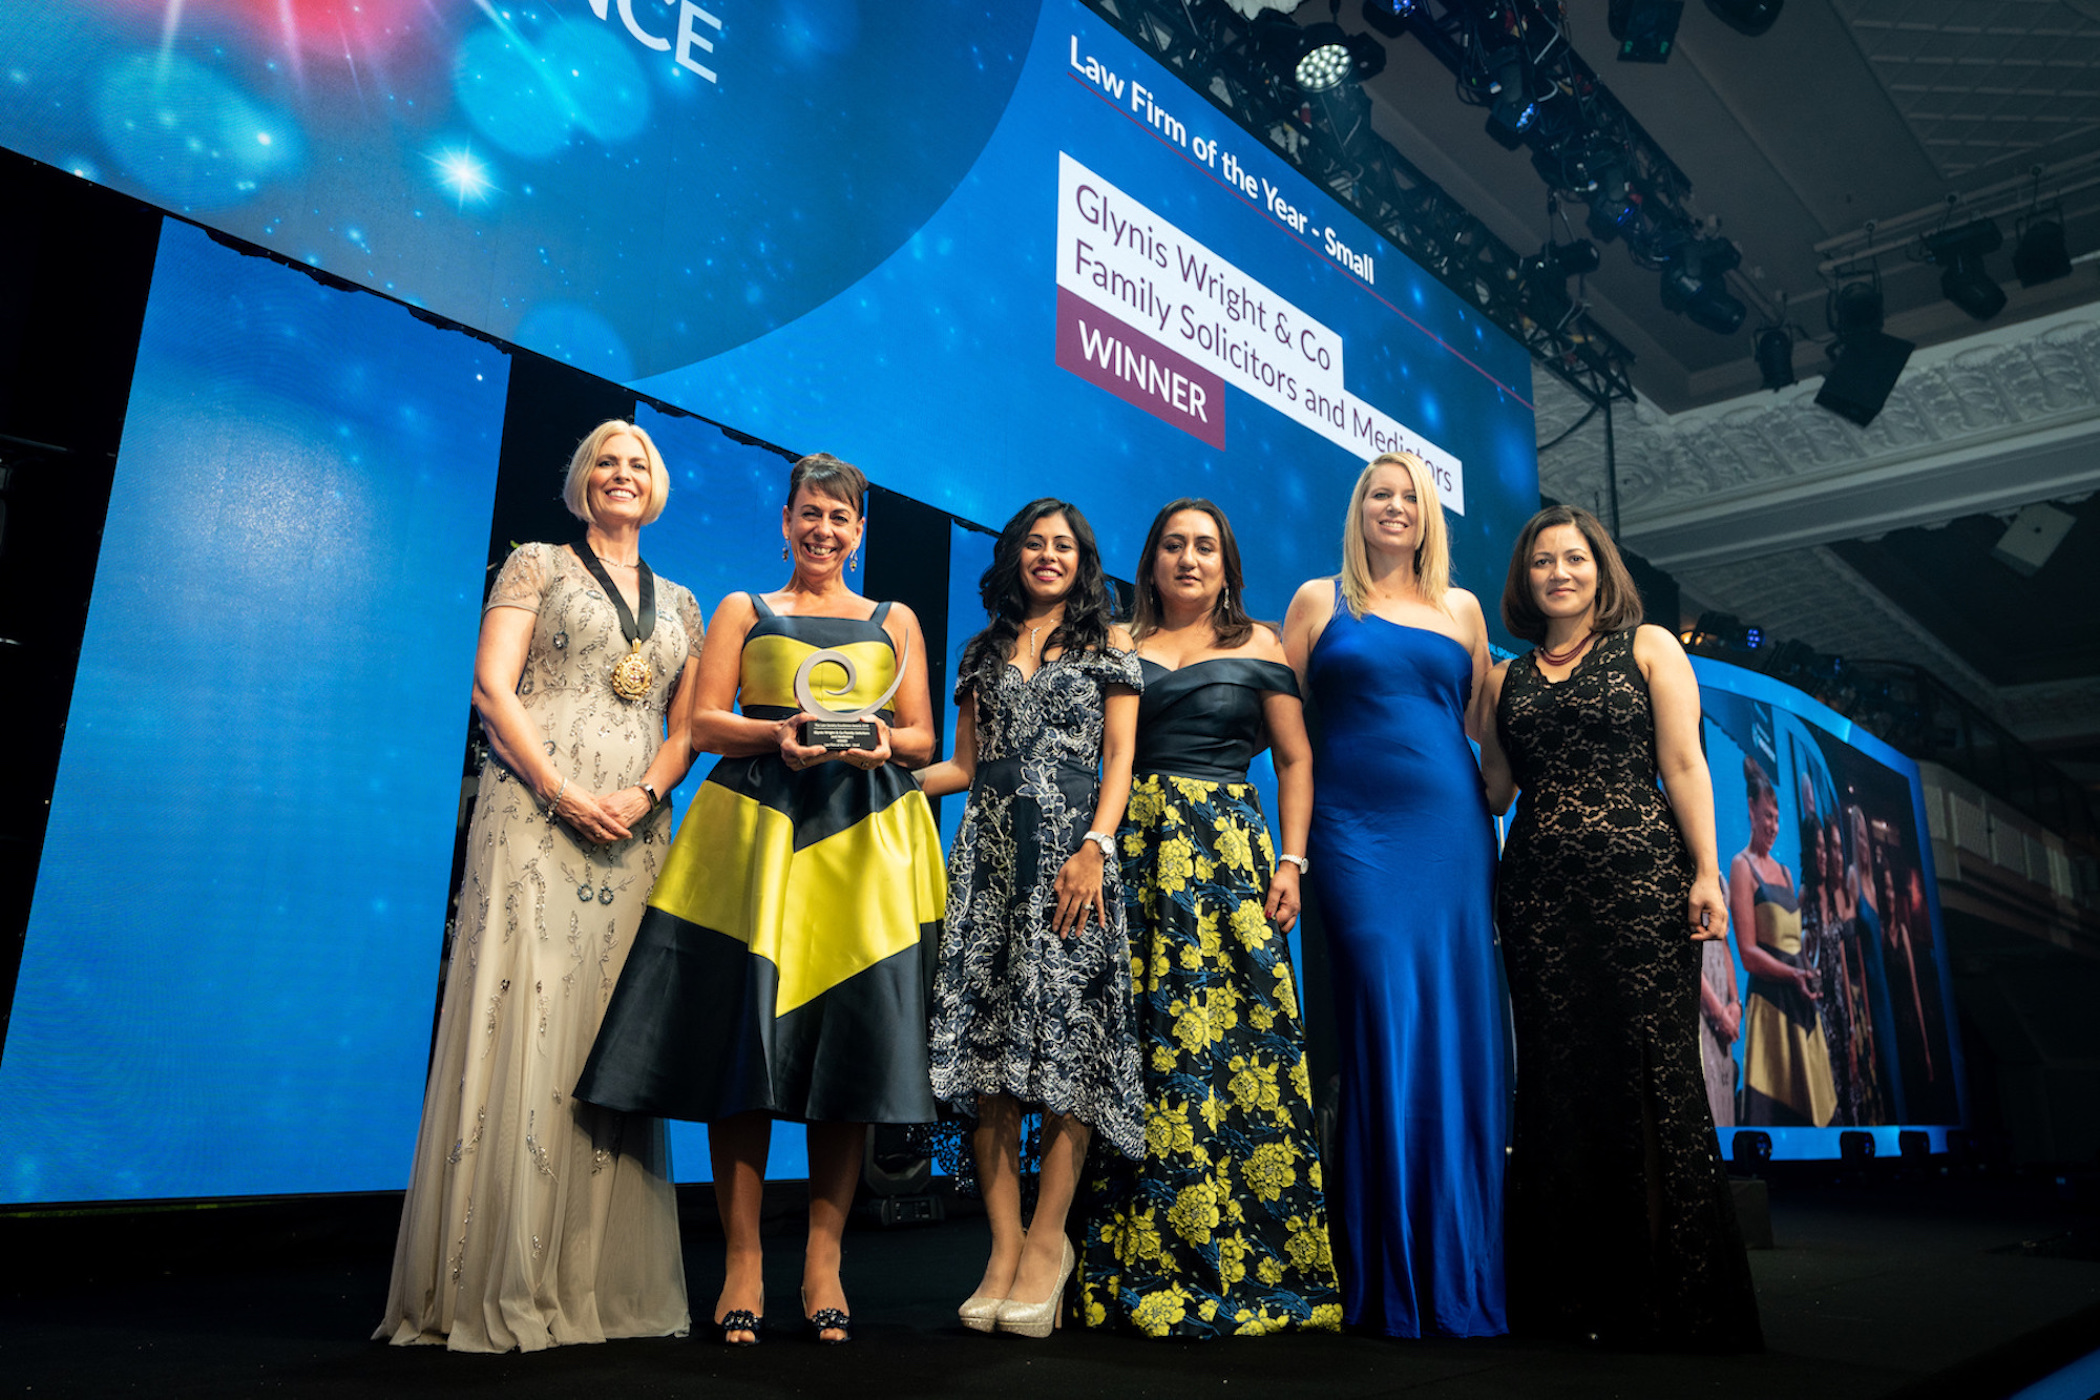 Glynis Wright & Co wins Small Law Firm of the Year at The Law Society's Excellence Awards